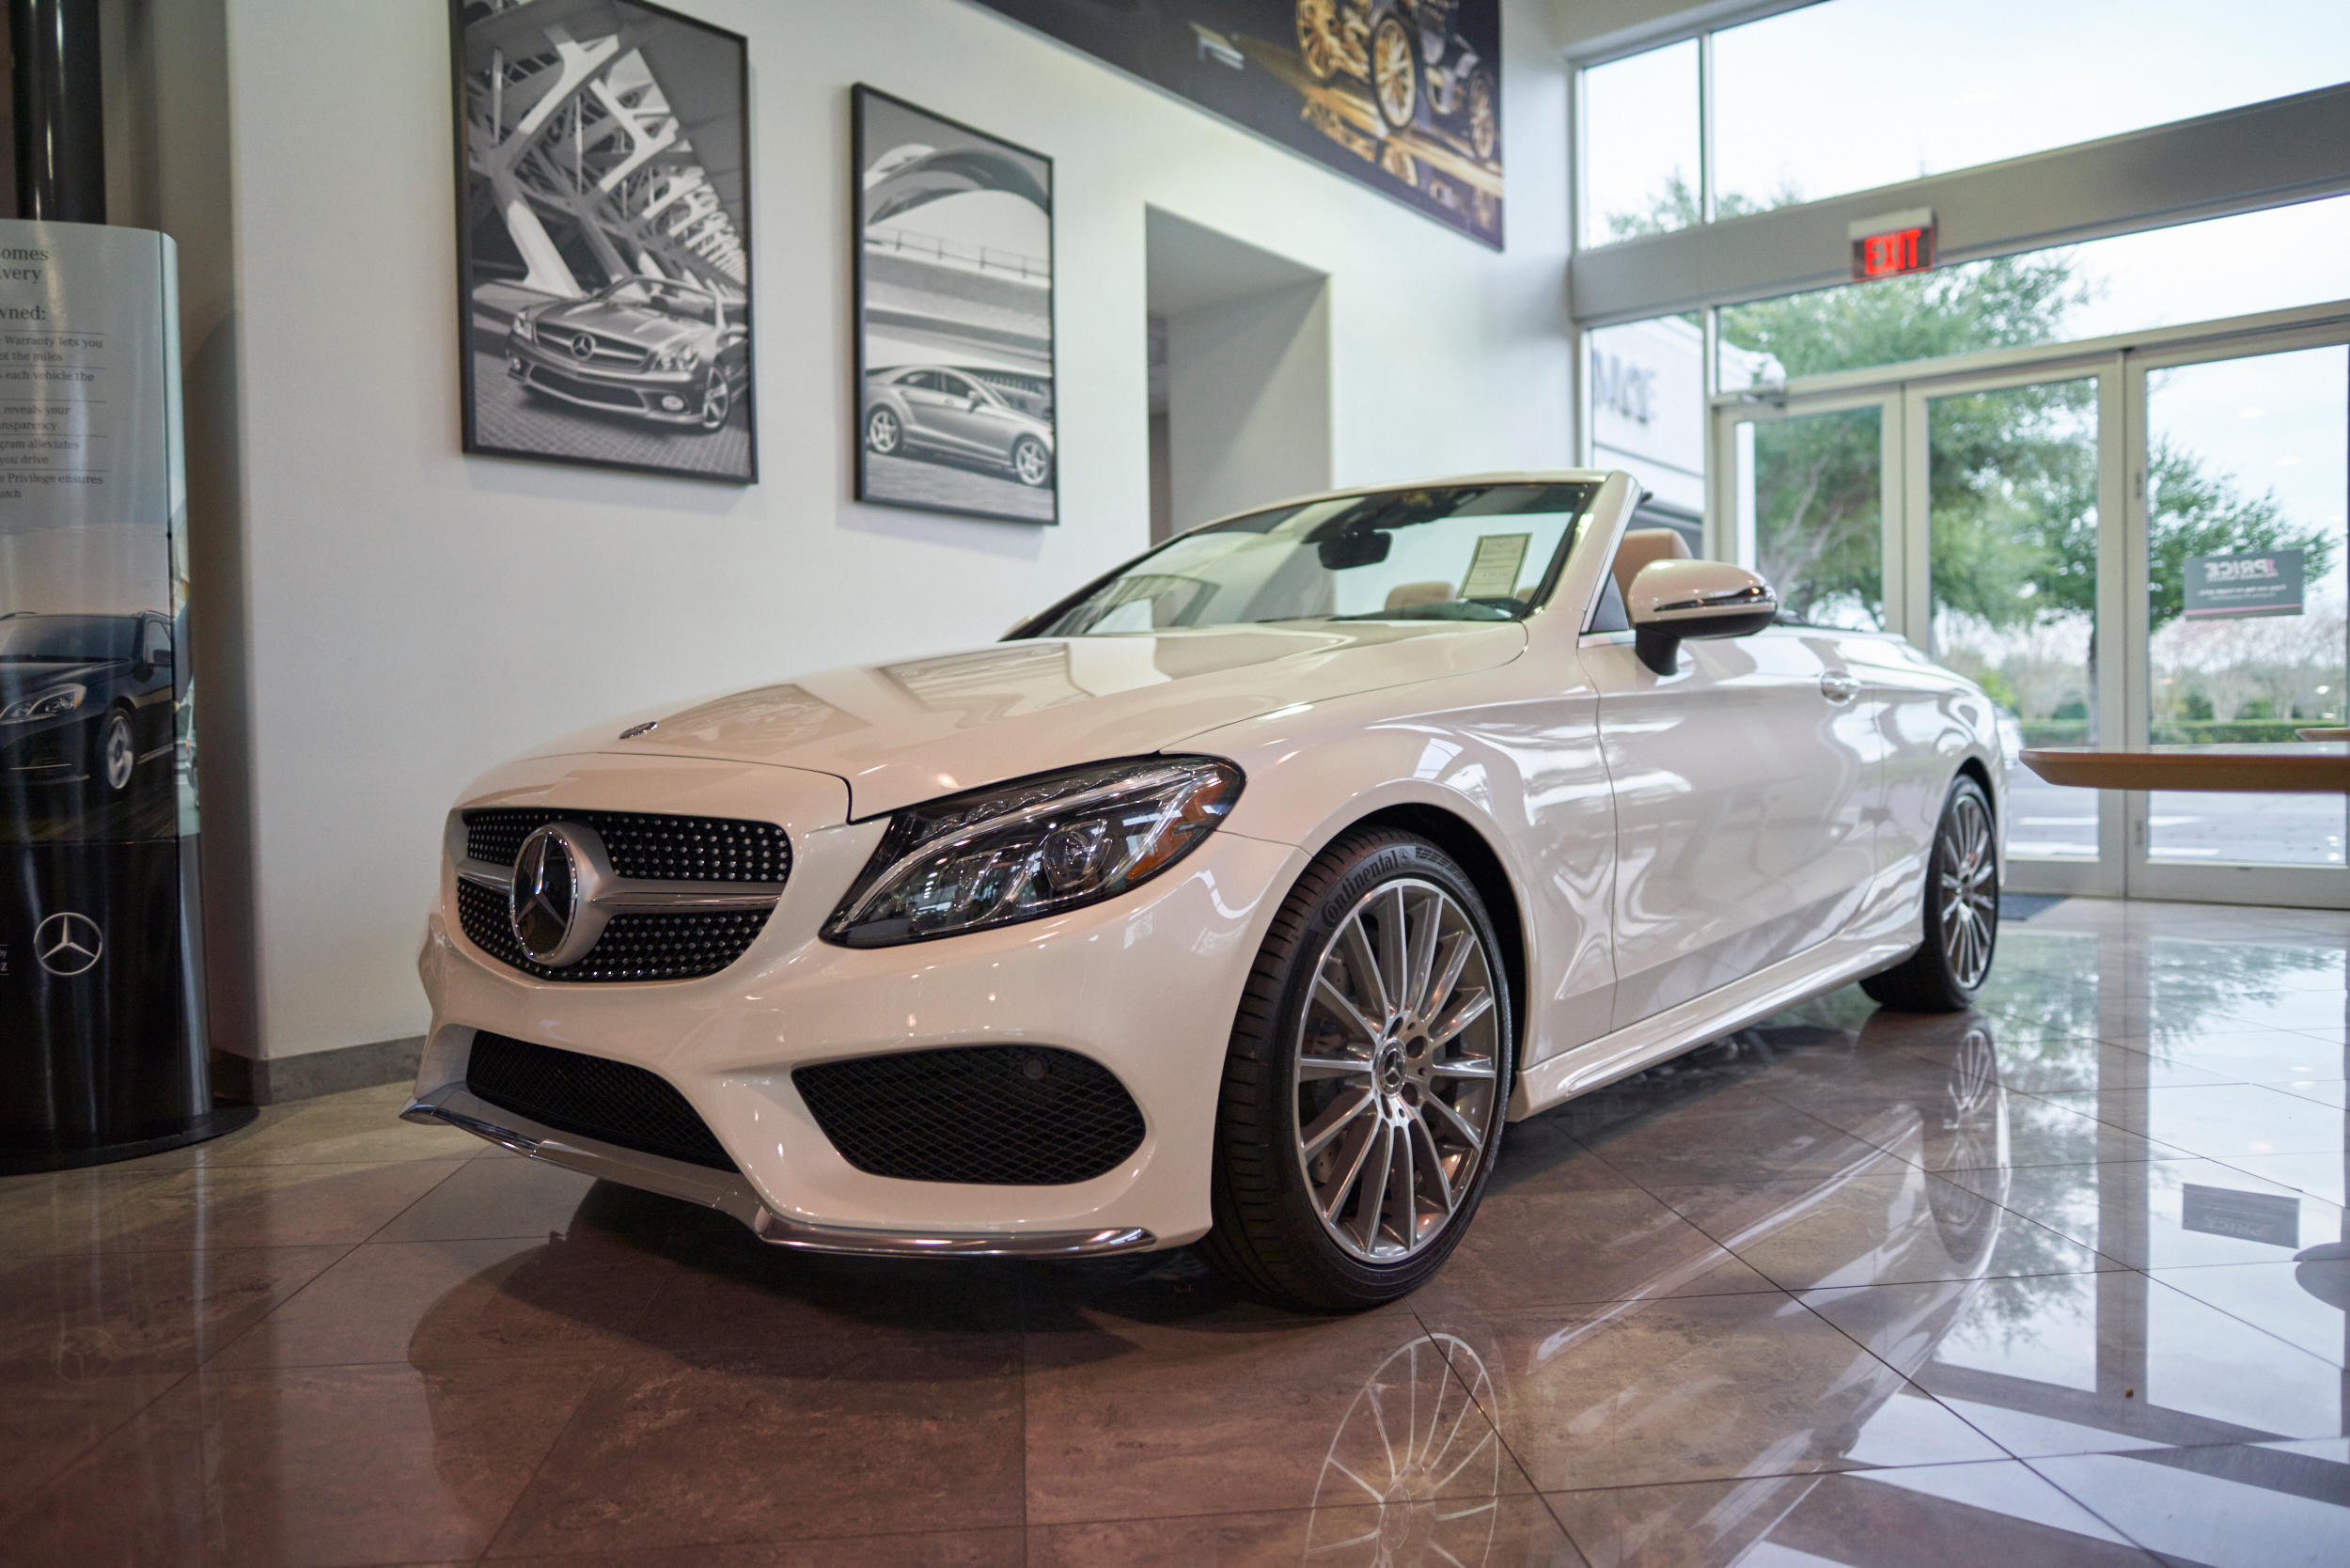 Mercedes benz of north orlando in sanford fl 32771 for Mercedes benz sanford florida